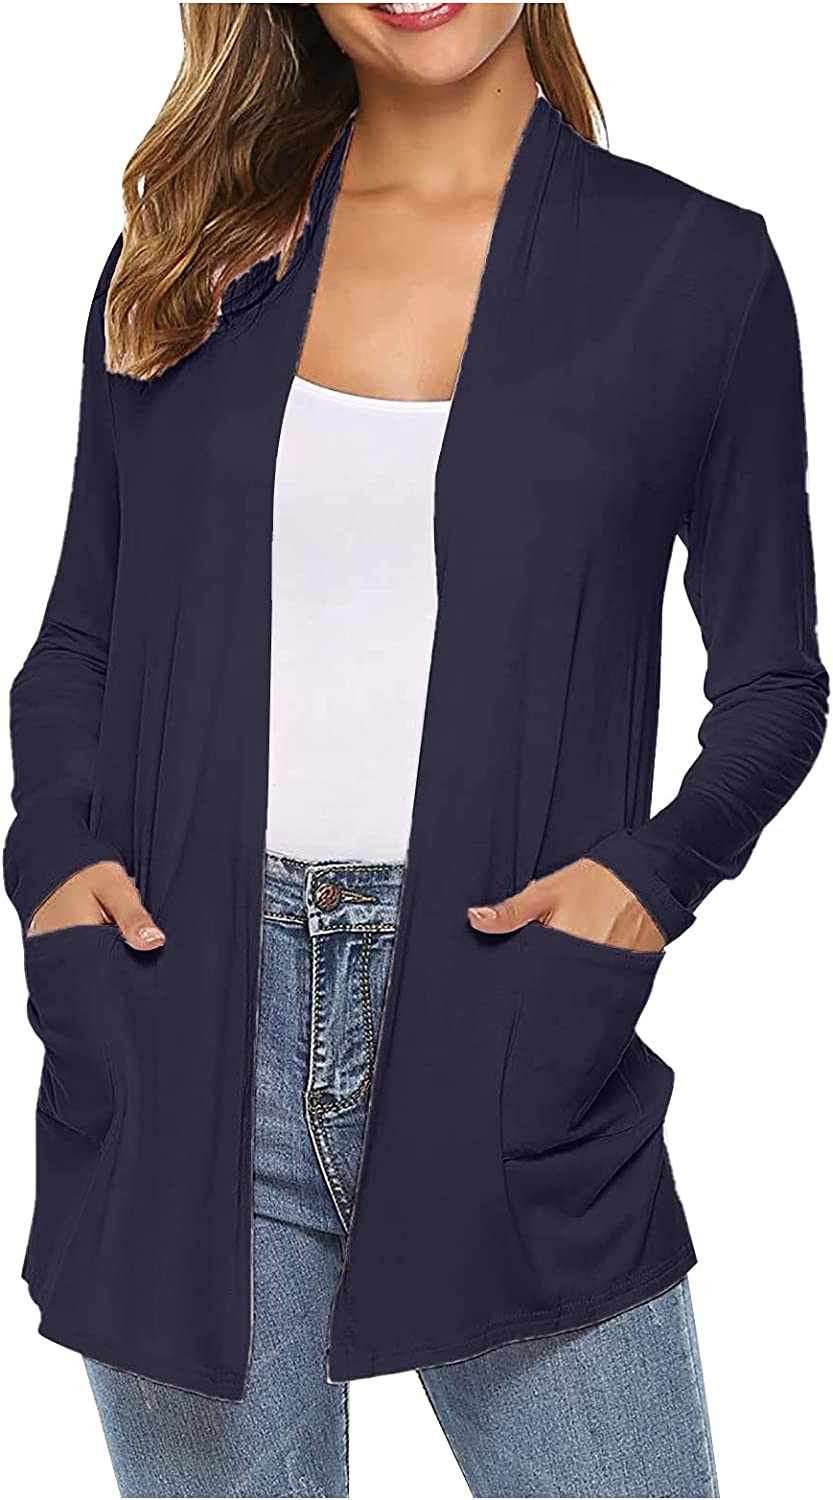 SERYU Women Cardigans Loose Casual Long Sleeved Open Front Breathable coat with Pockets